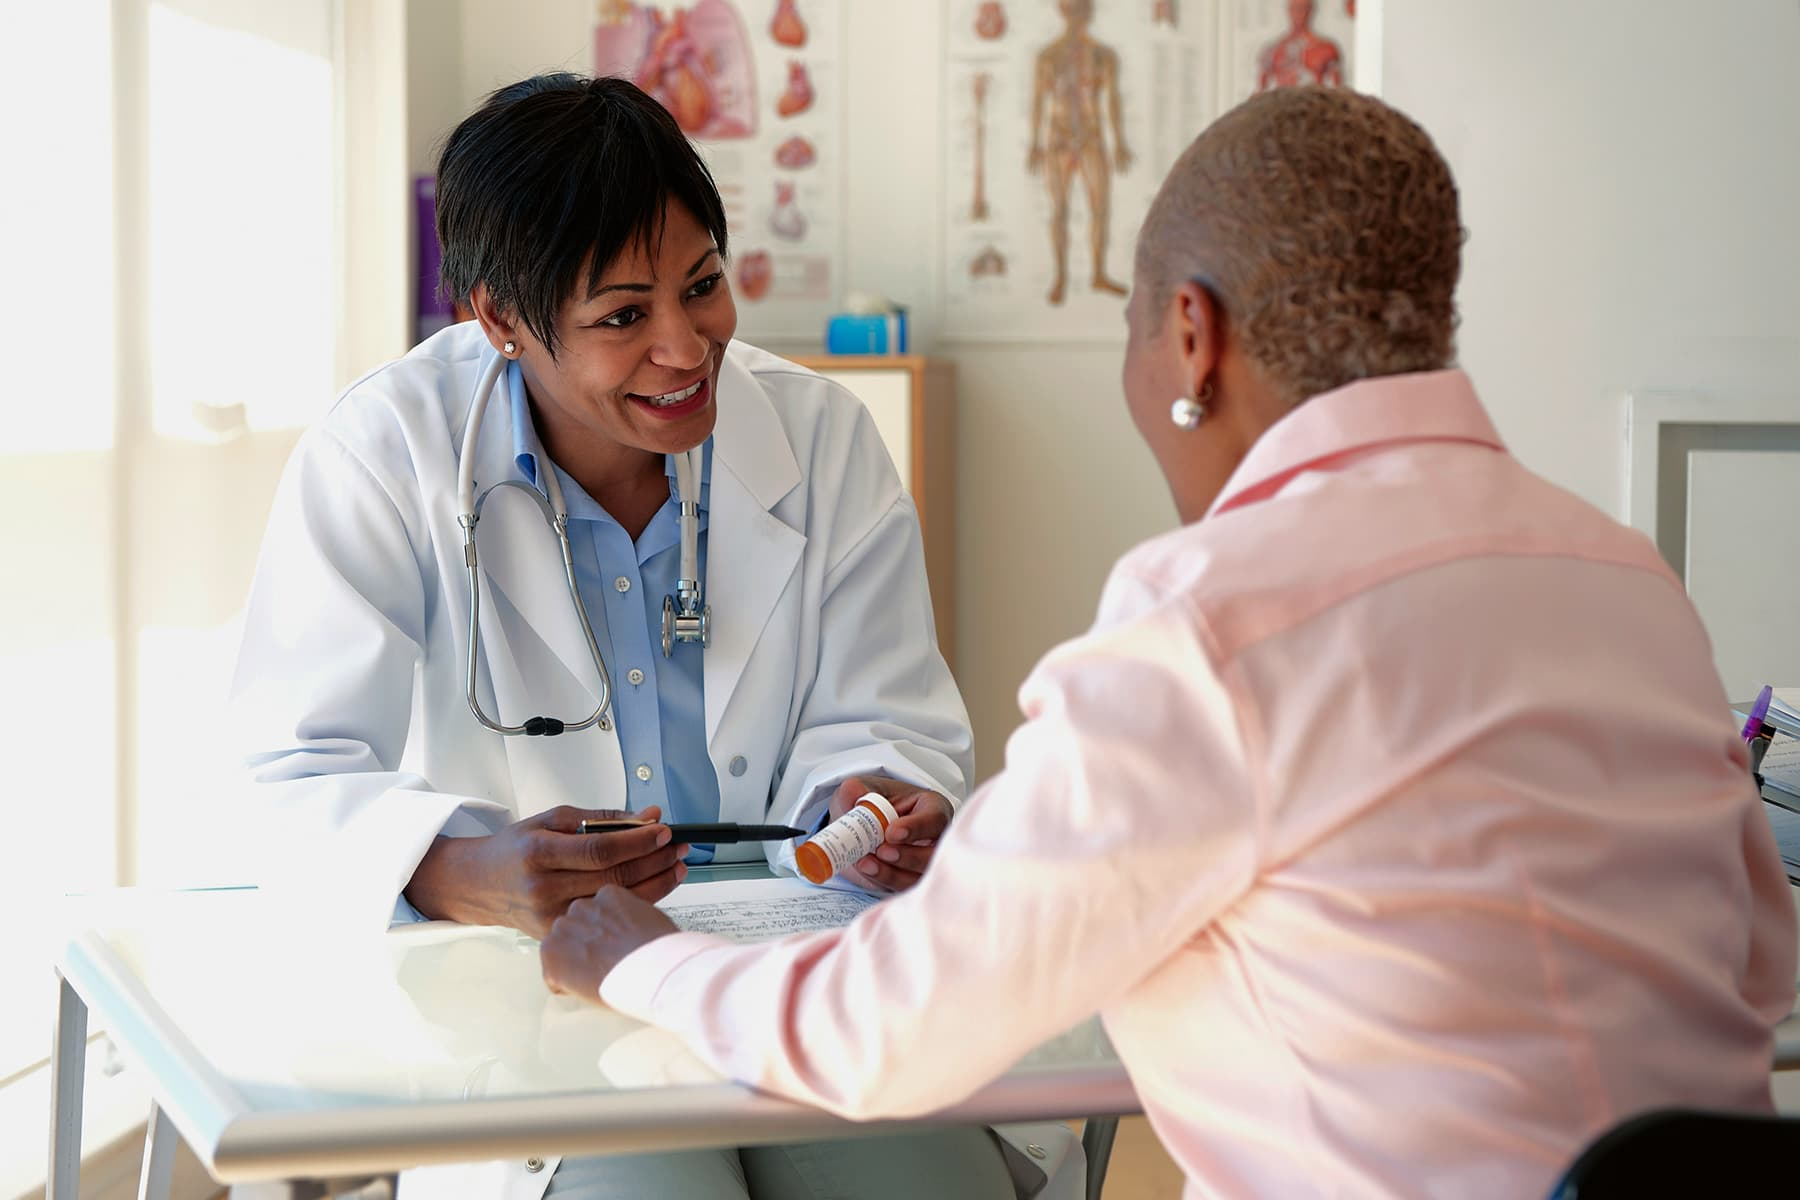 Minorities are less comfortable discussing sensitive issues with their doctor